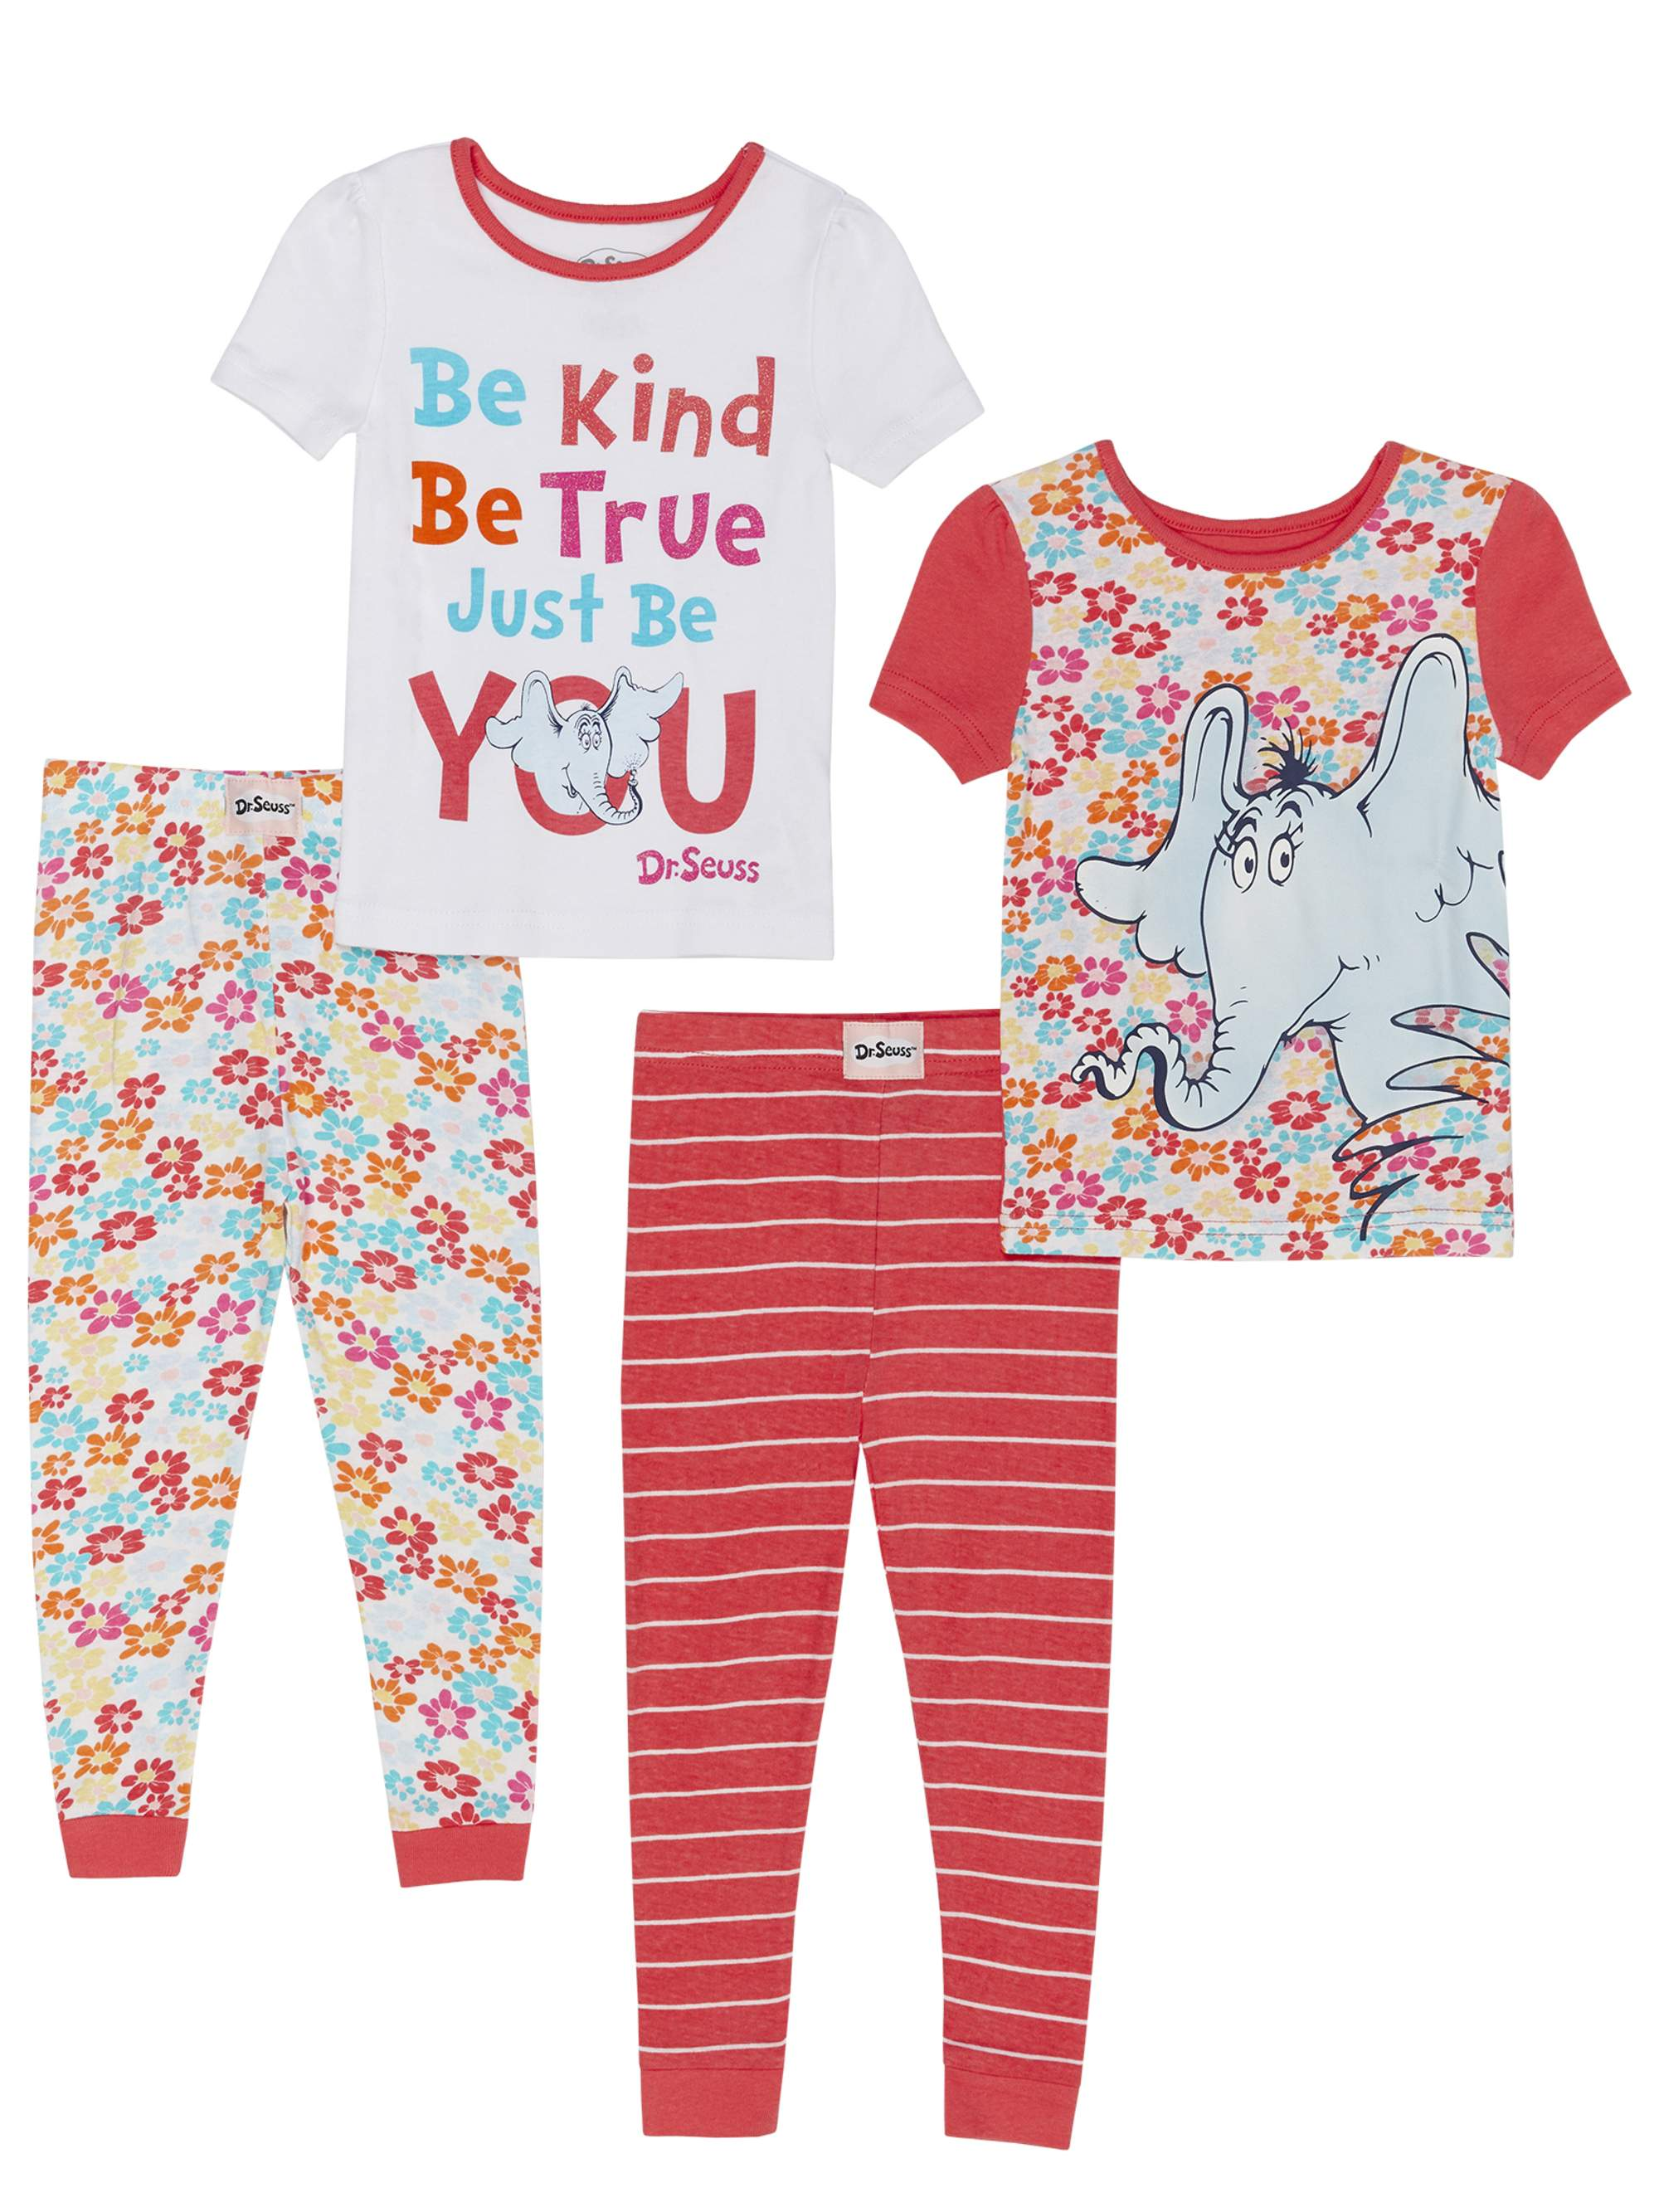 Horton Hears a Who Cotton Tight Fit Pajamas, 4pc Set (Toddler Girls)